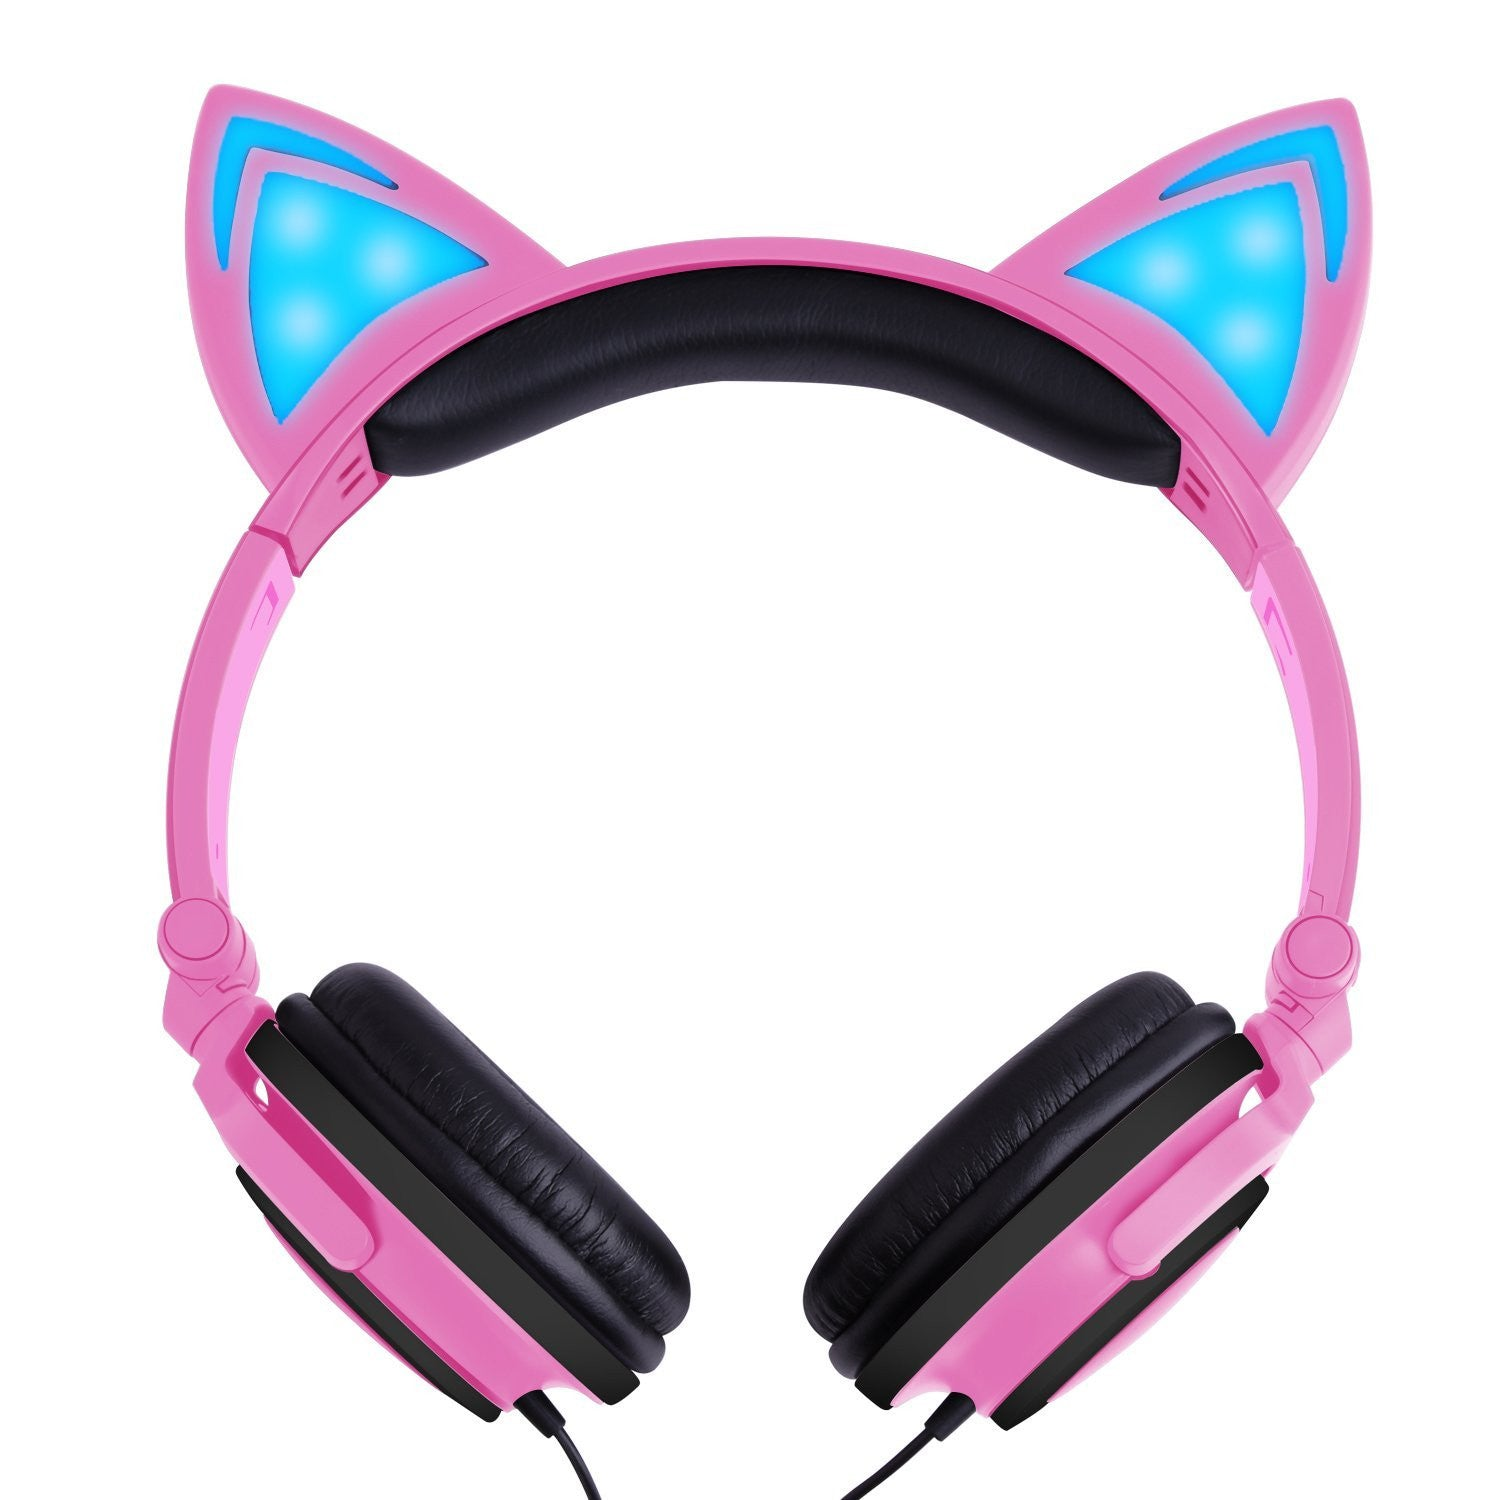 08c70ee228a Wired Cat Ear Kids Headphones,Flashing Glowing Cosplay Fancy Foldable Over  Ear Headsets with Led Light Up / 3.5mm Earphone for Kids,Children,Girls  ,Boys